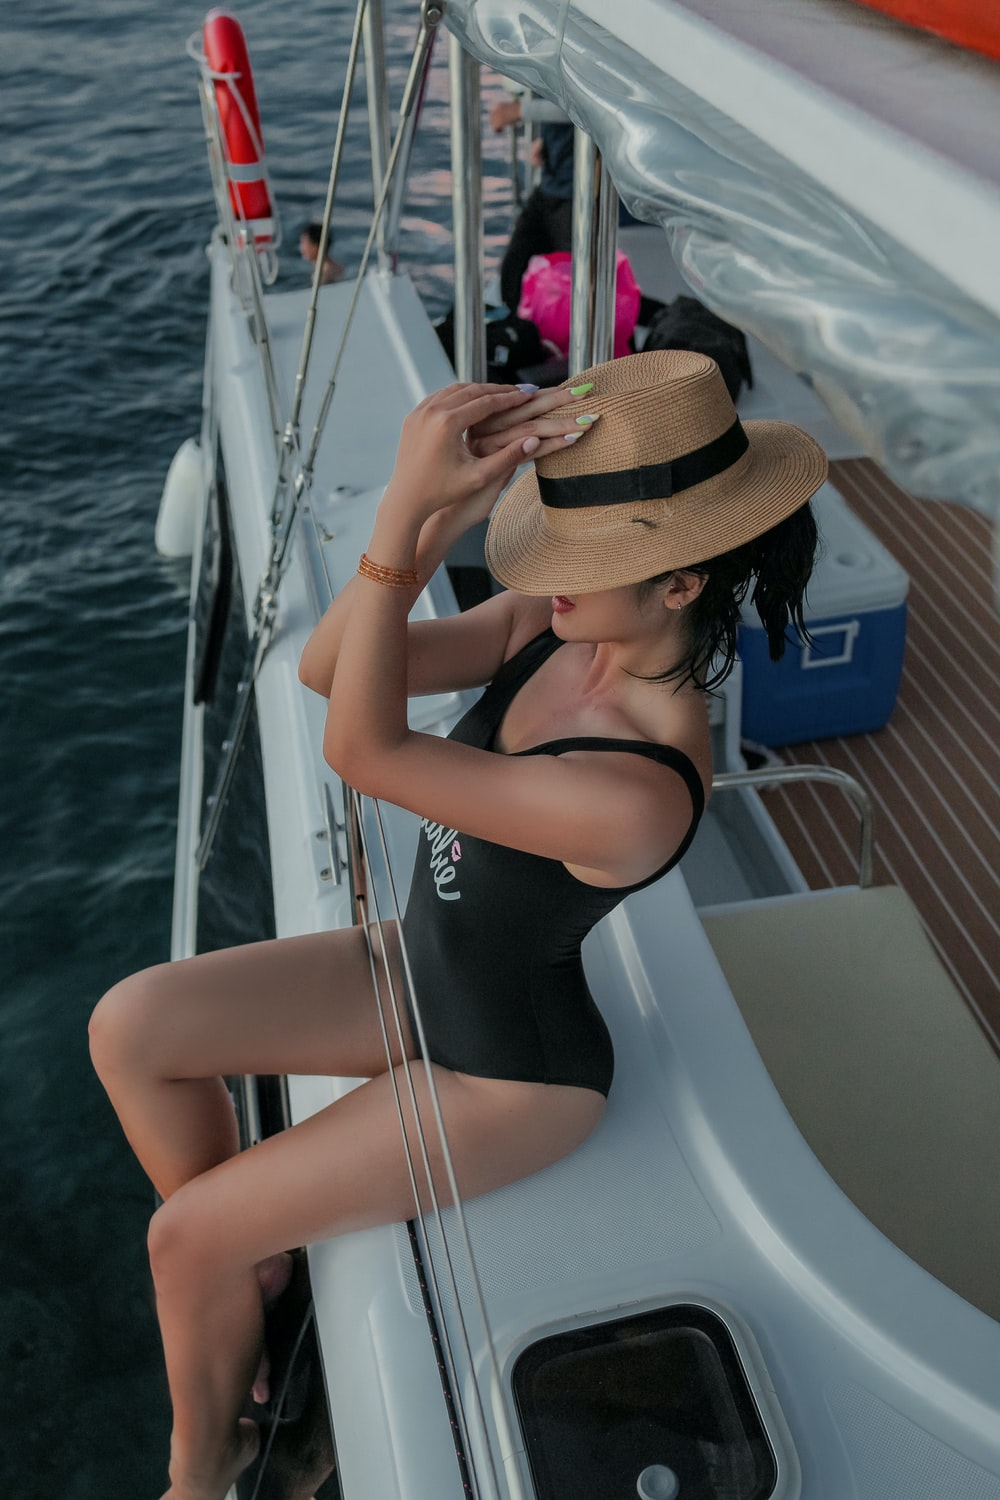 woman in black swimsuit wearing brown sun hat sitting on white boat during daytime